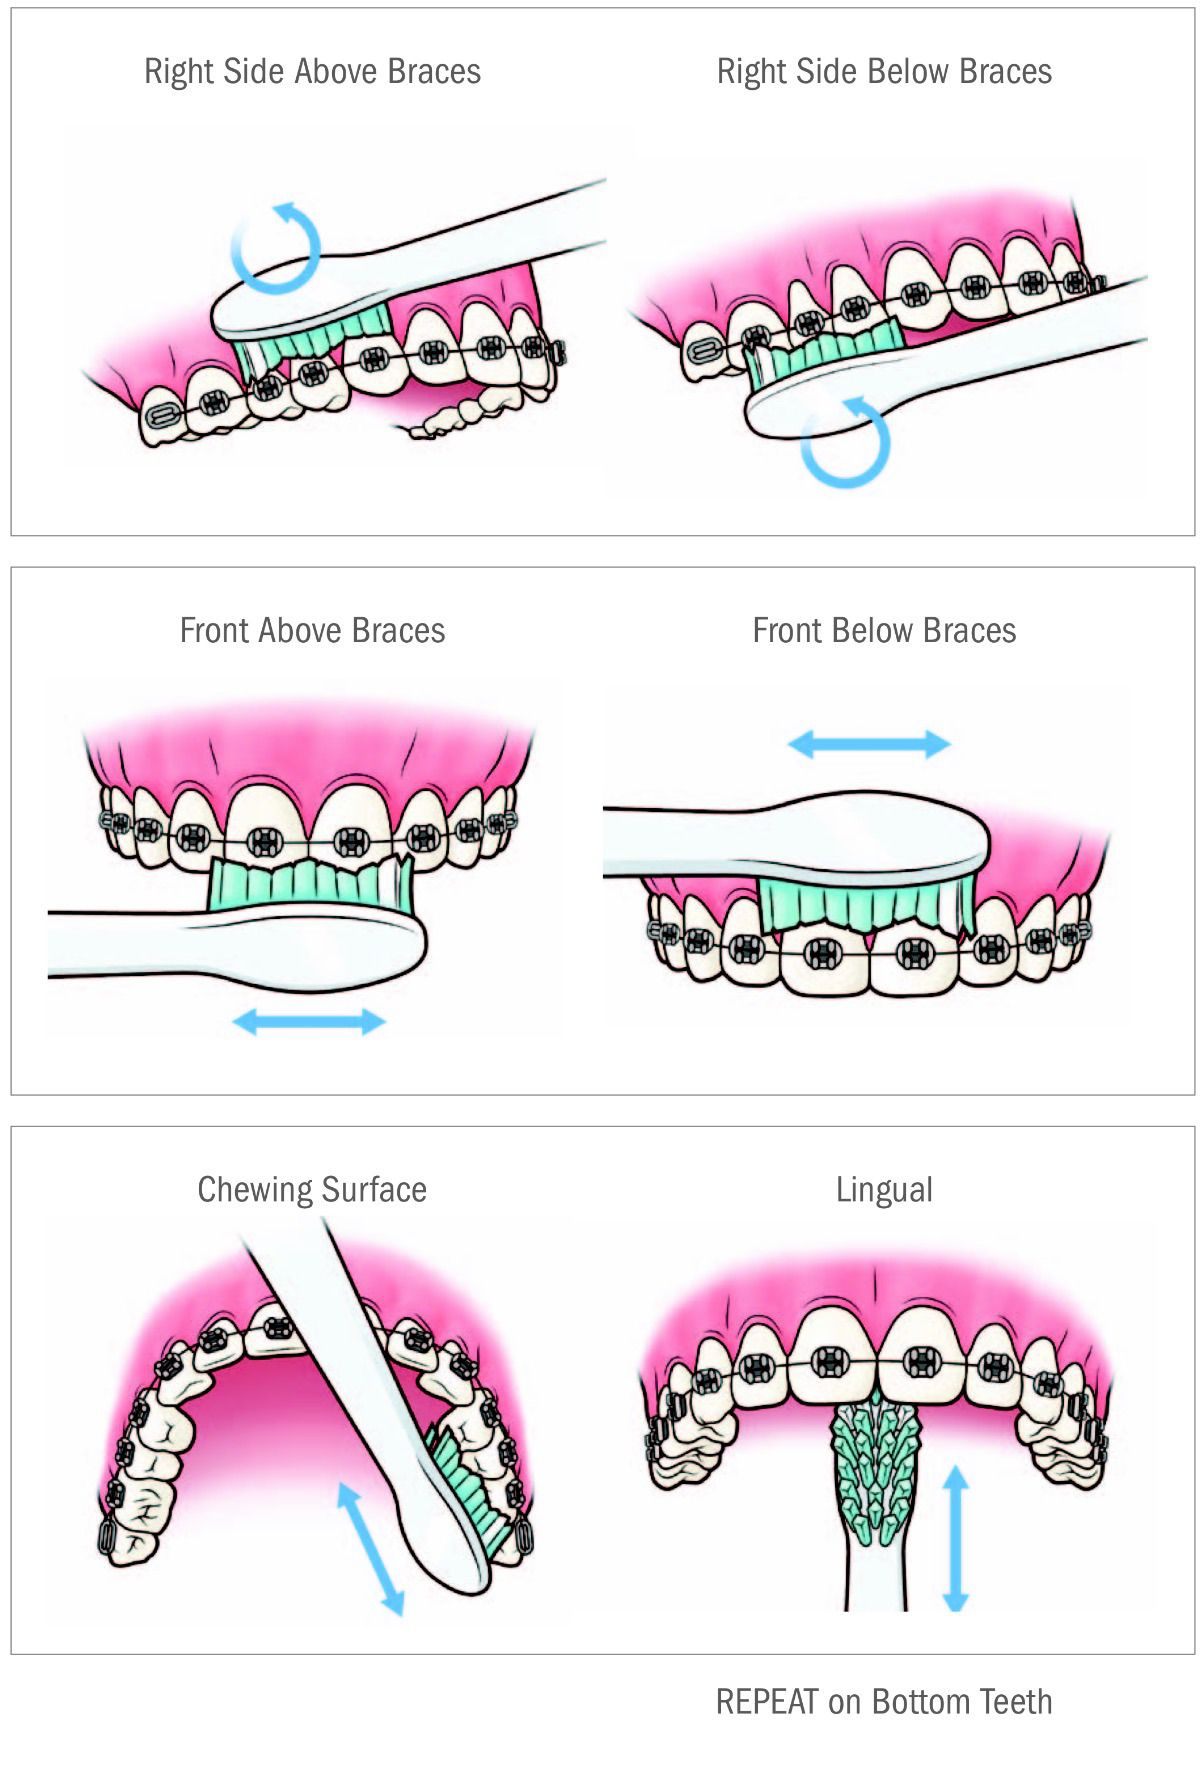 Healthy smiles both in and out of braces getting braces